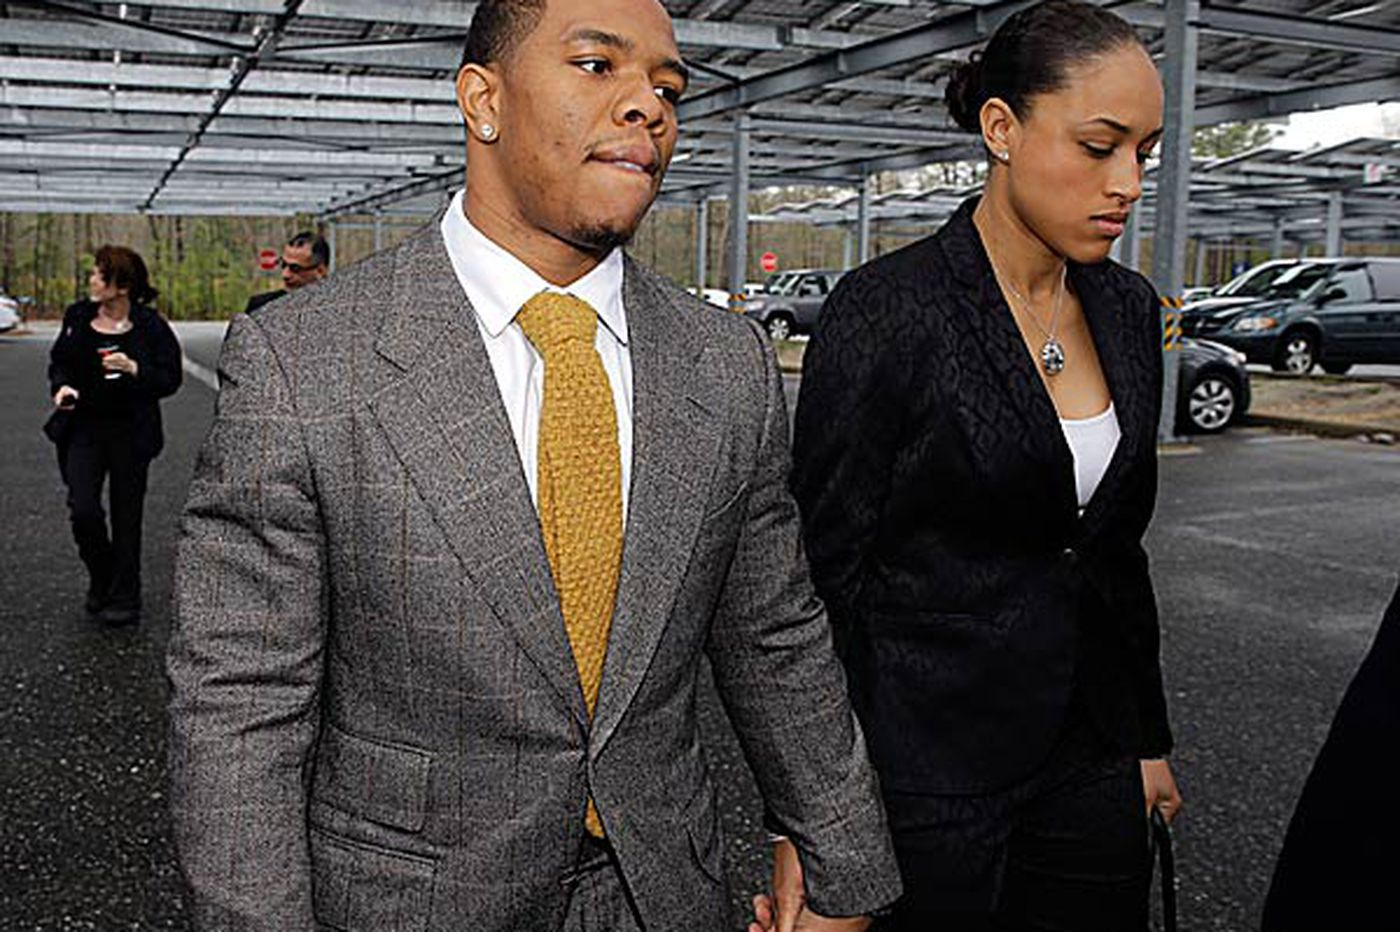 How Ray Rice got into pre-trial intervention